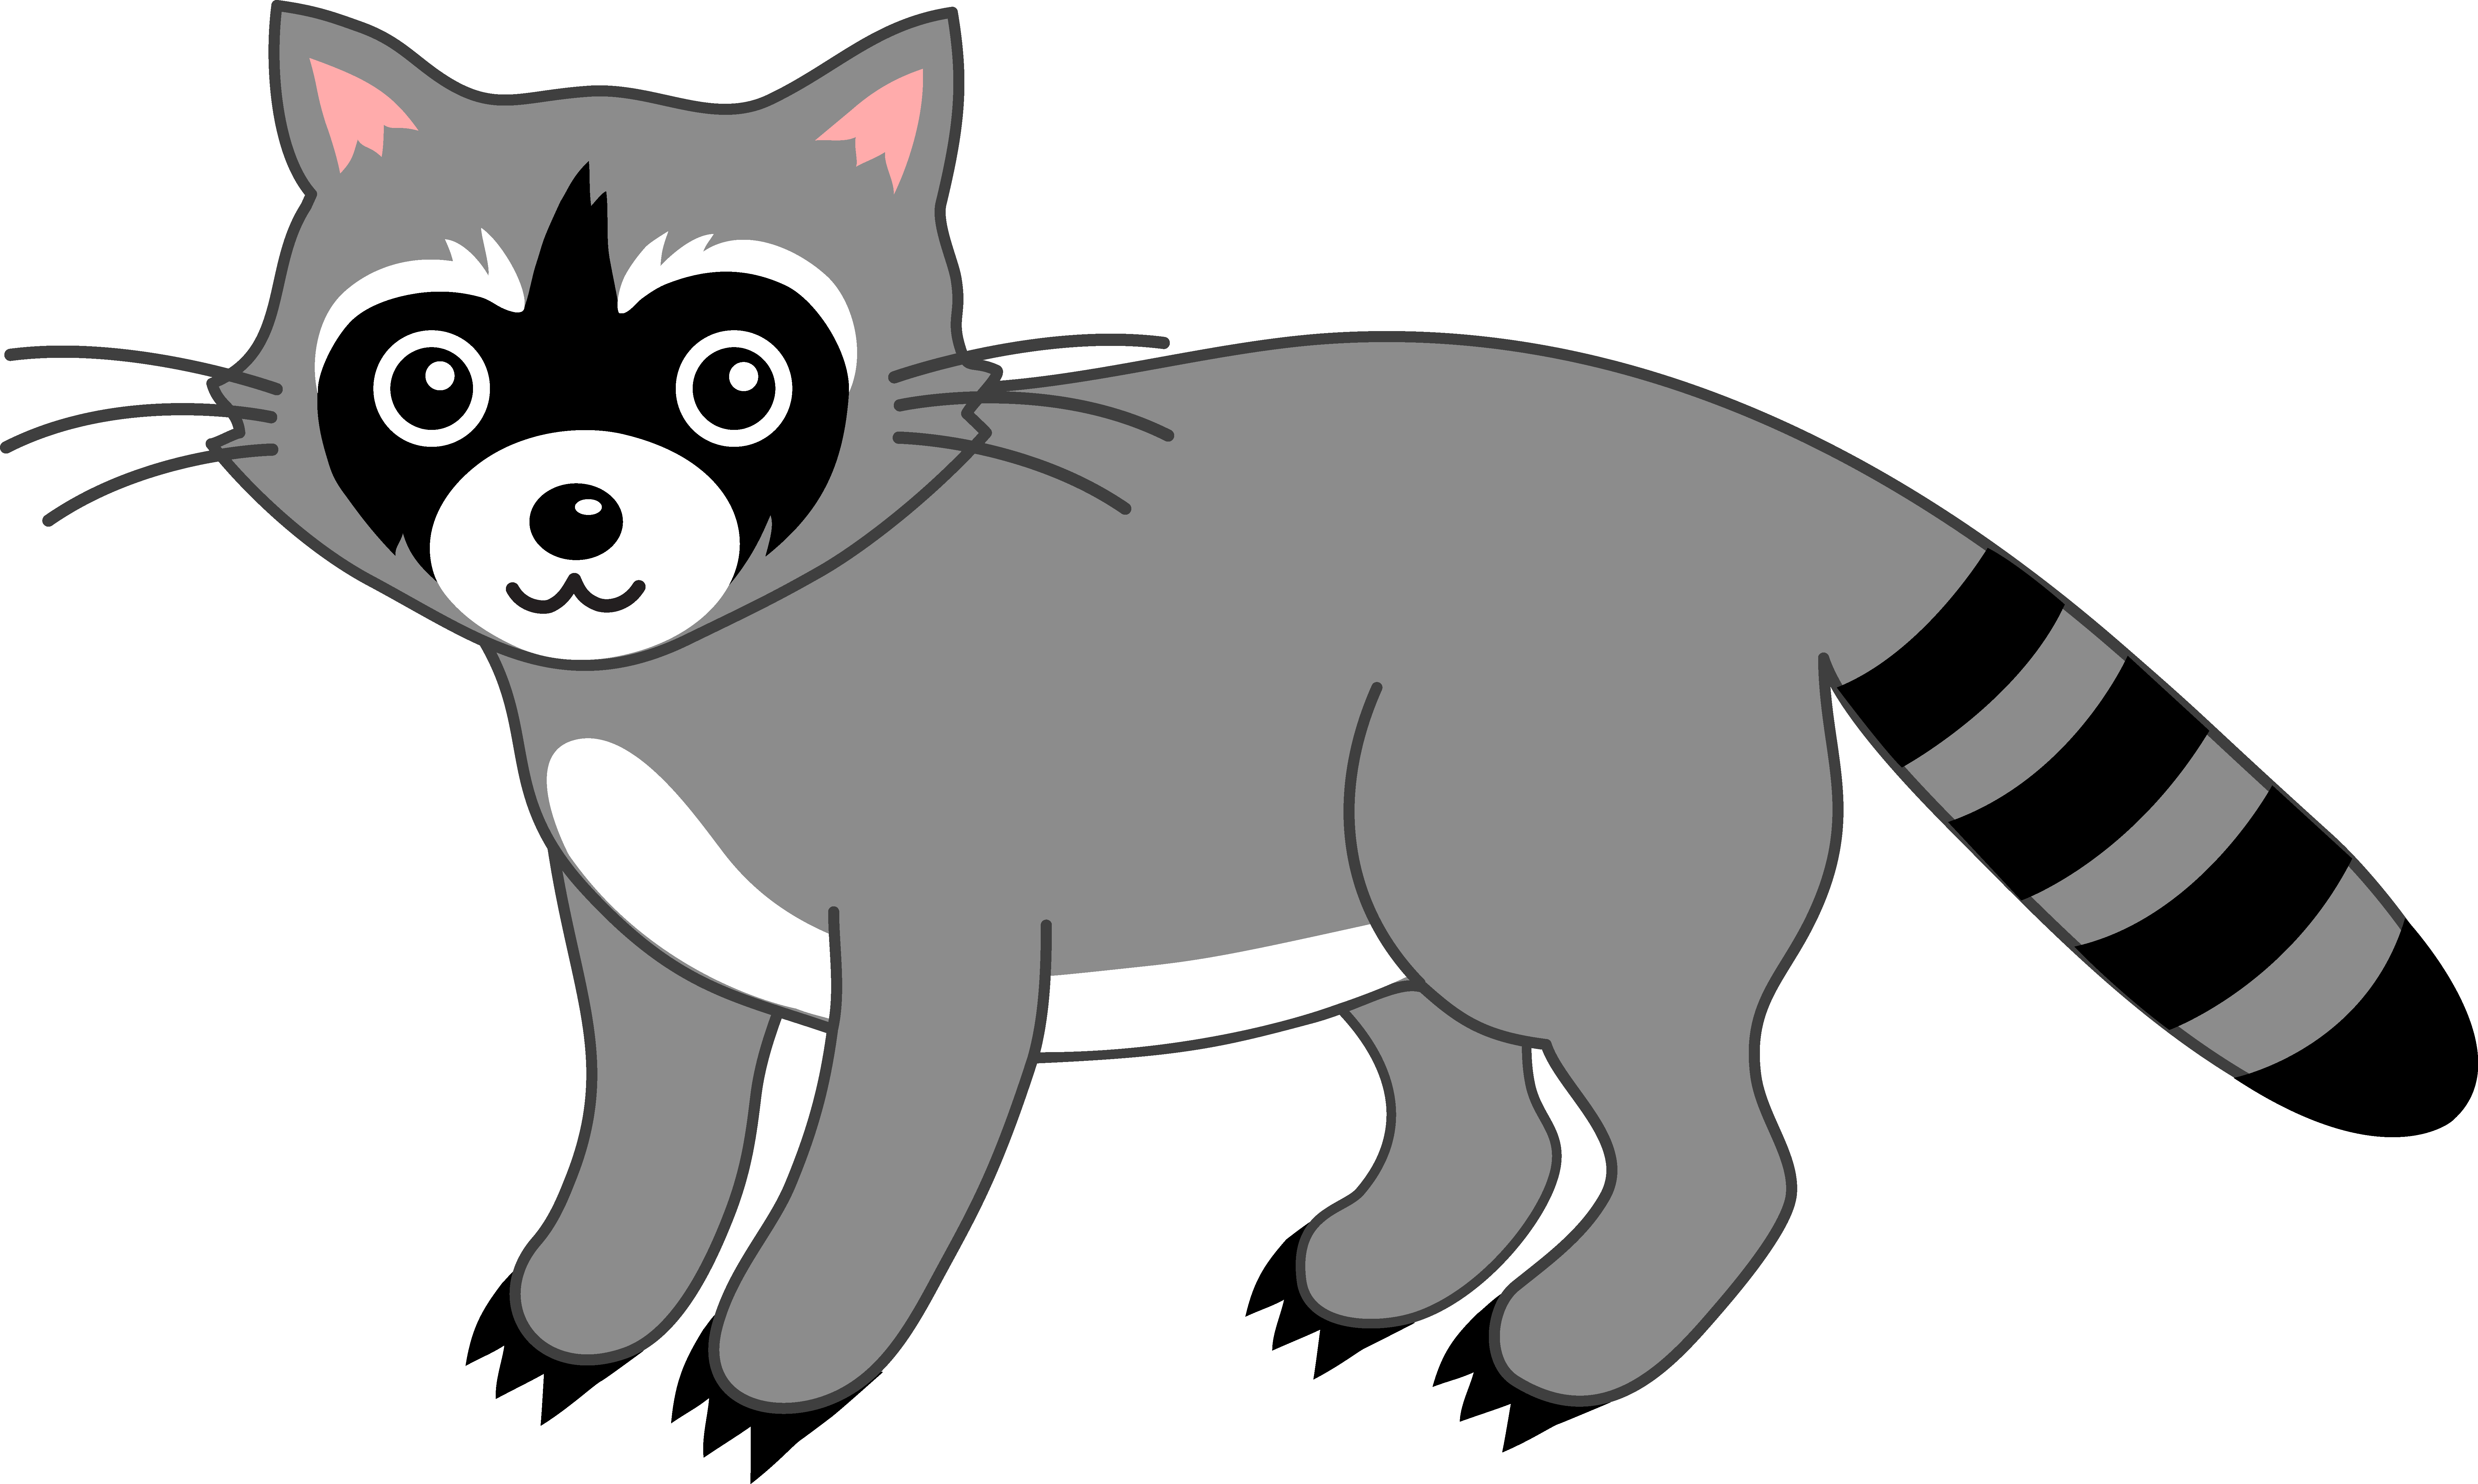 Raccoons clipart svg black and white library Cute Grey Raccoon - Free Clip Art svg black and white library